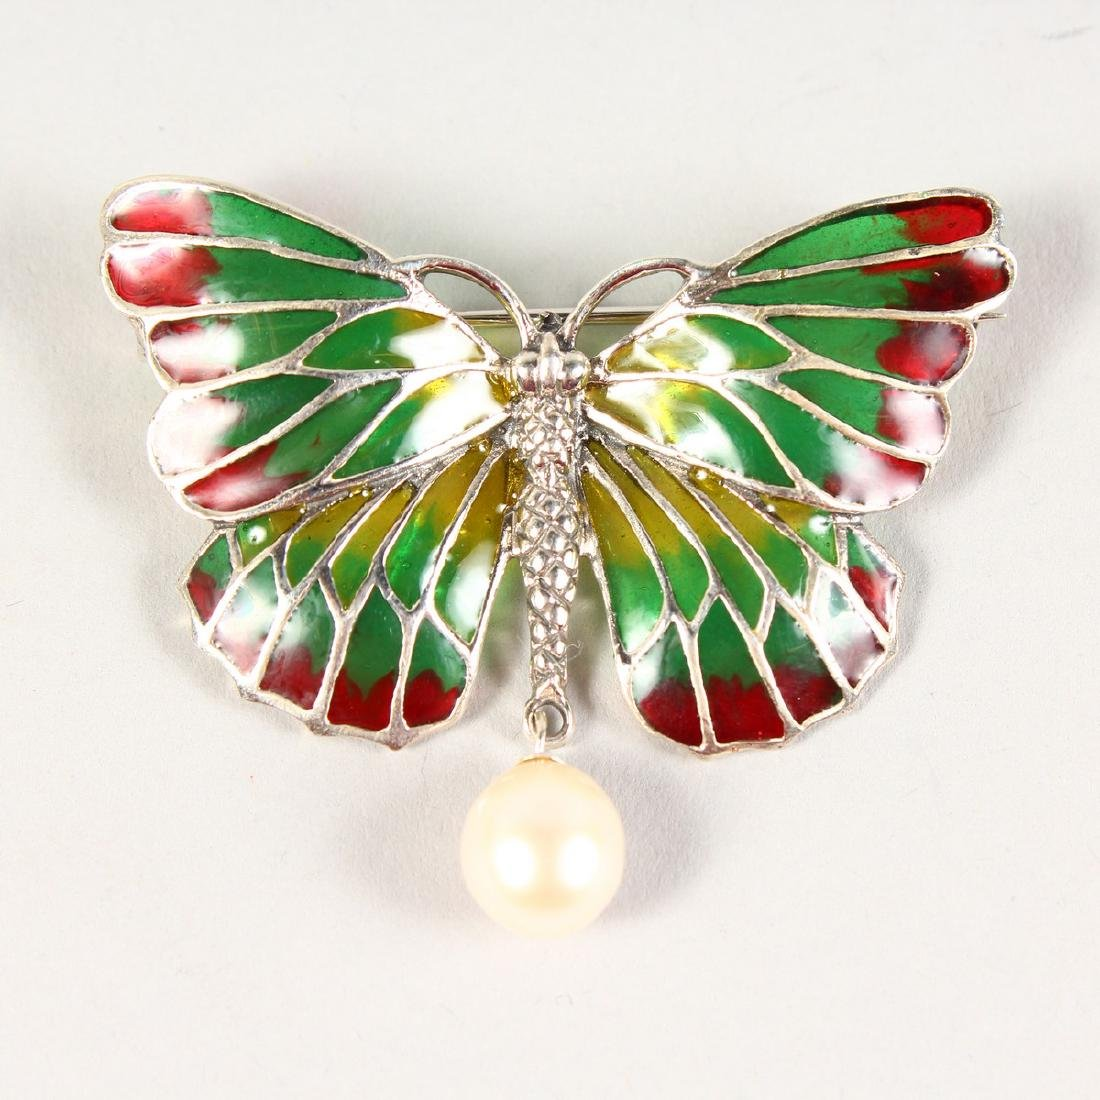 A SILVER AND PLIQUE JOUR ENAMEL BUTTERFLY BROOCH.